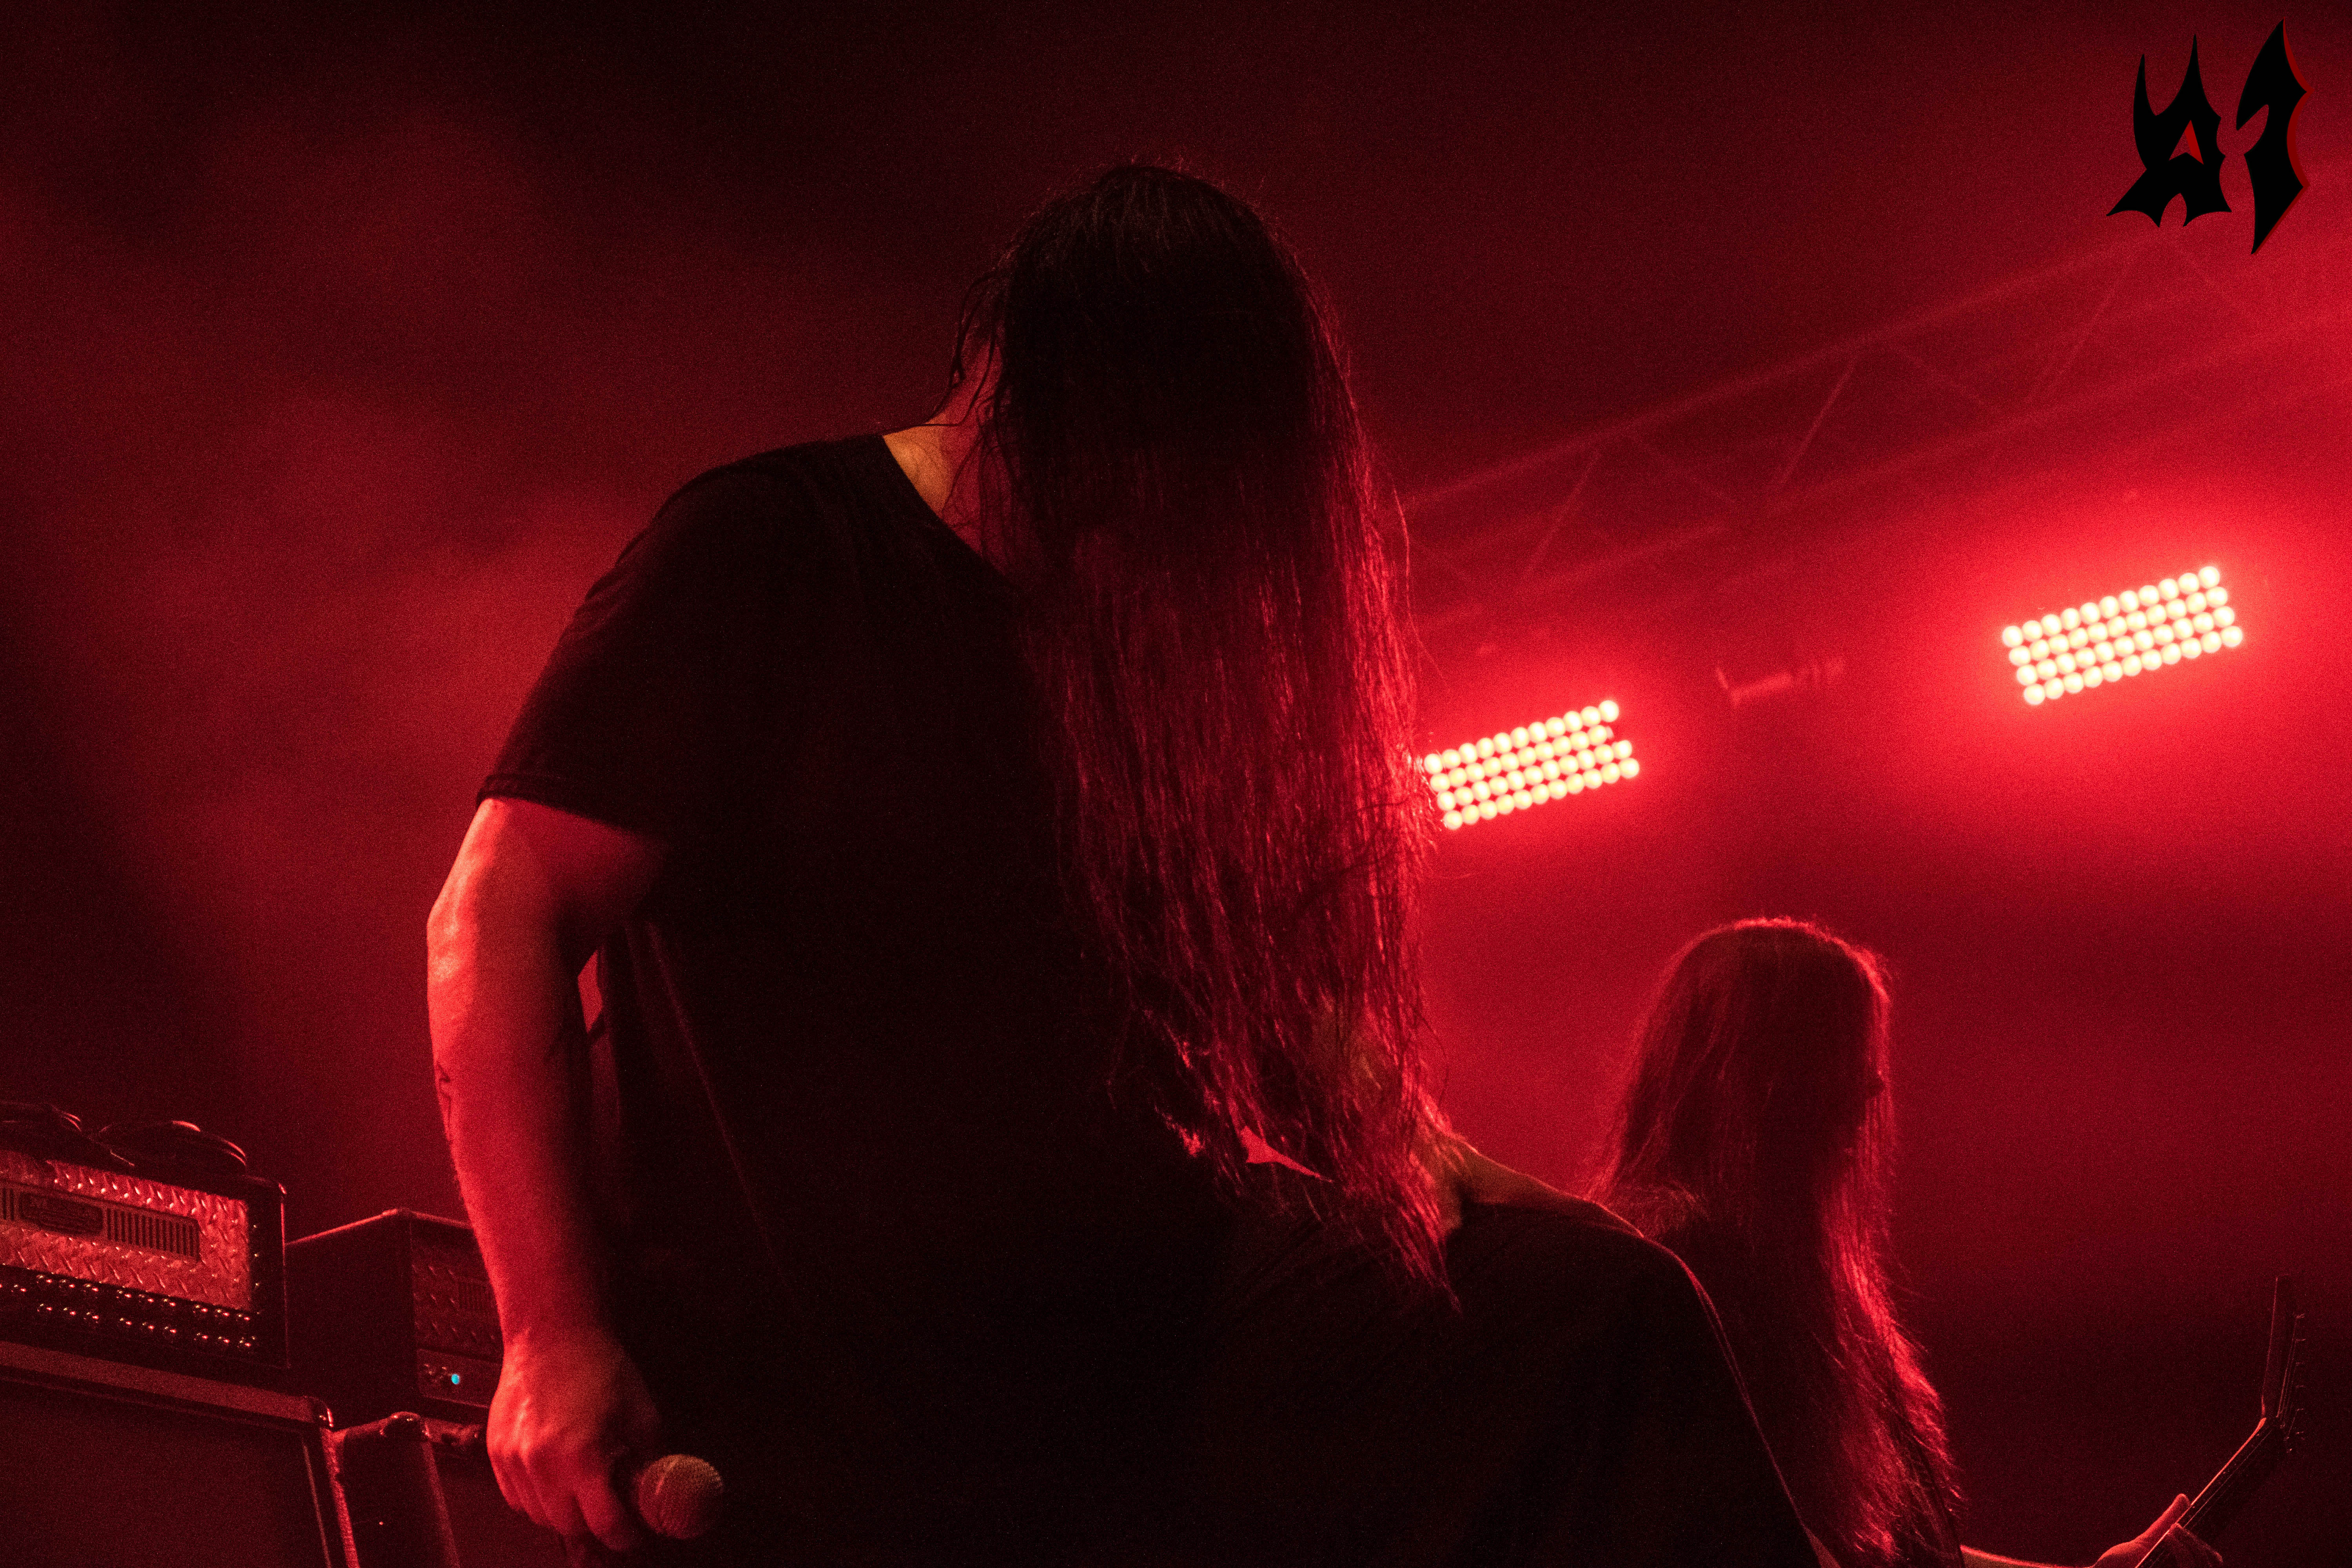 Motocultor 2018 – Day 2 - Cannibal Corpse 23